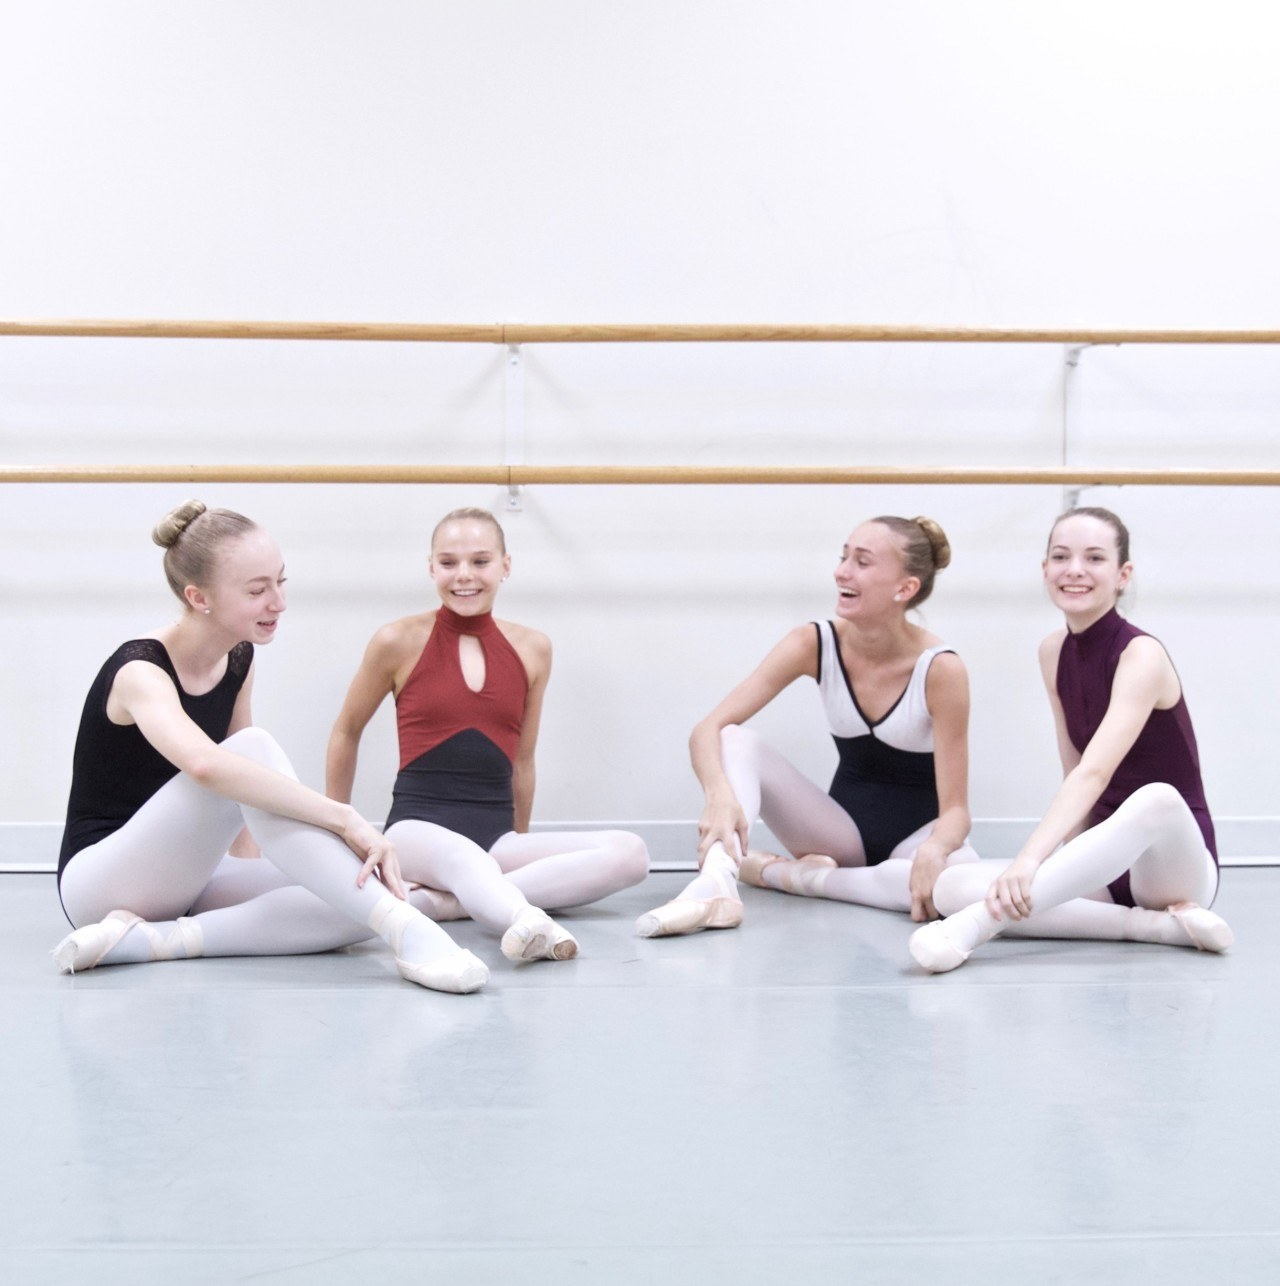 Ballet Class Etiquette: How to Conduct Yourself